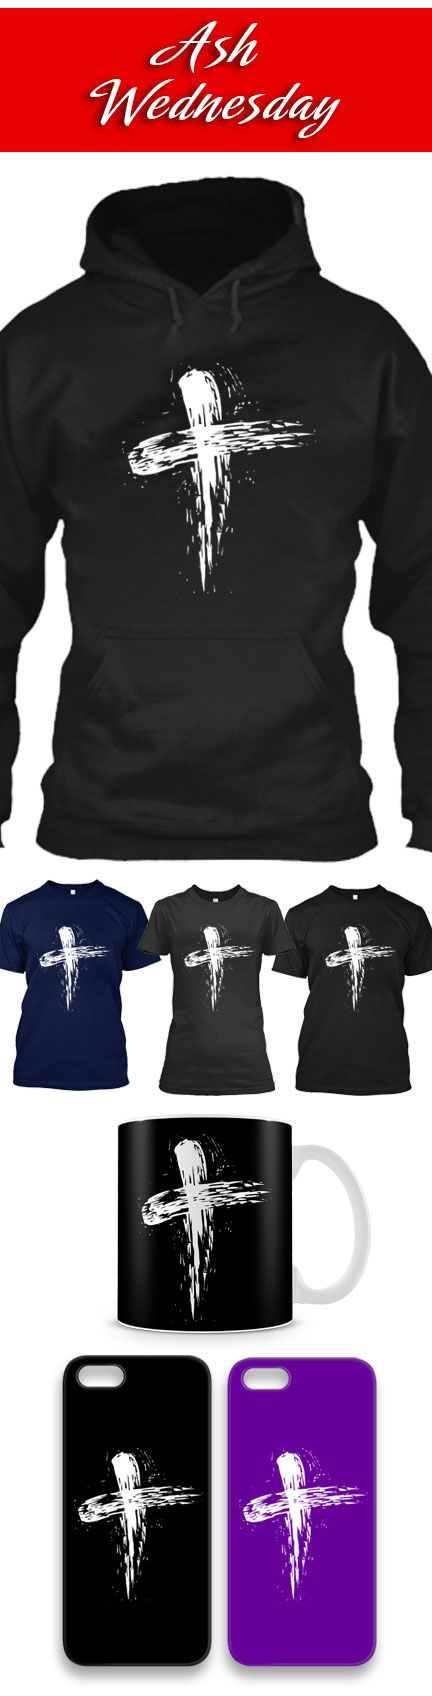 Ash Wednesday Shirts! Click The Image To Buy It Now or Tag Someone You Want To Buy This For. #ashwednesday